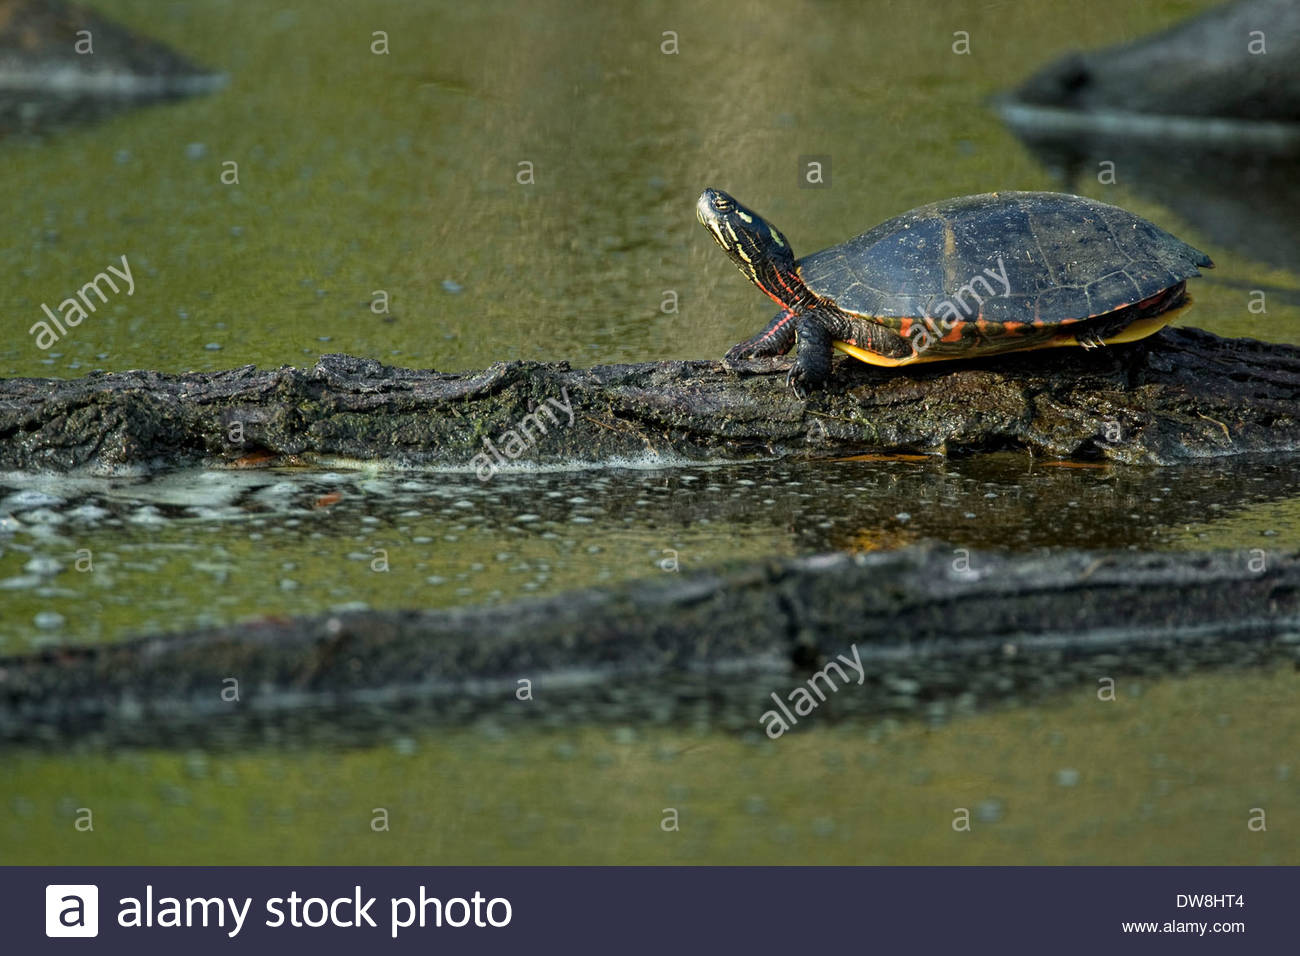 Painted turtle (Chrysemys picta) resting on log in swamp, North America - Stock Image